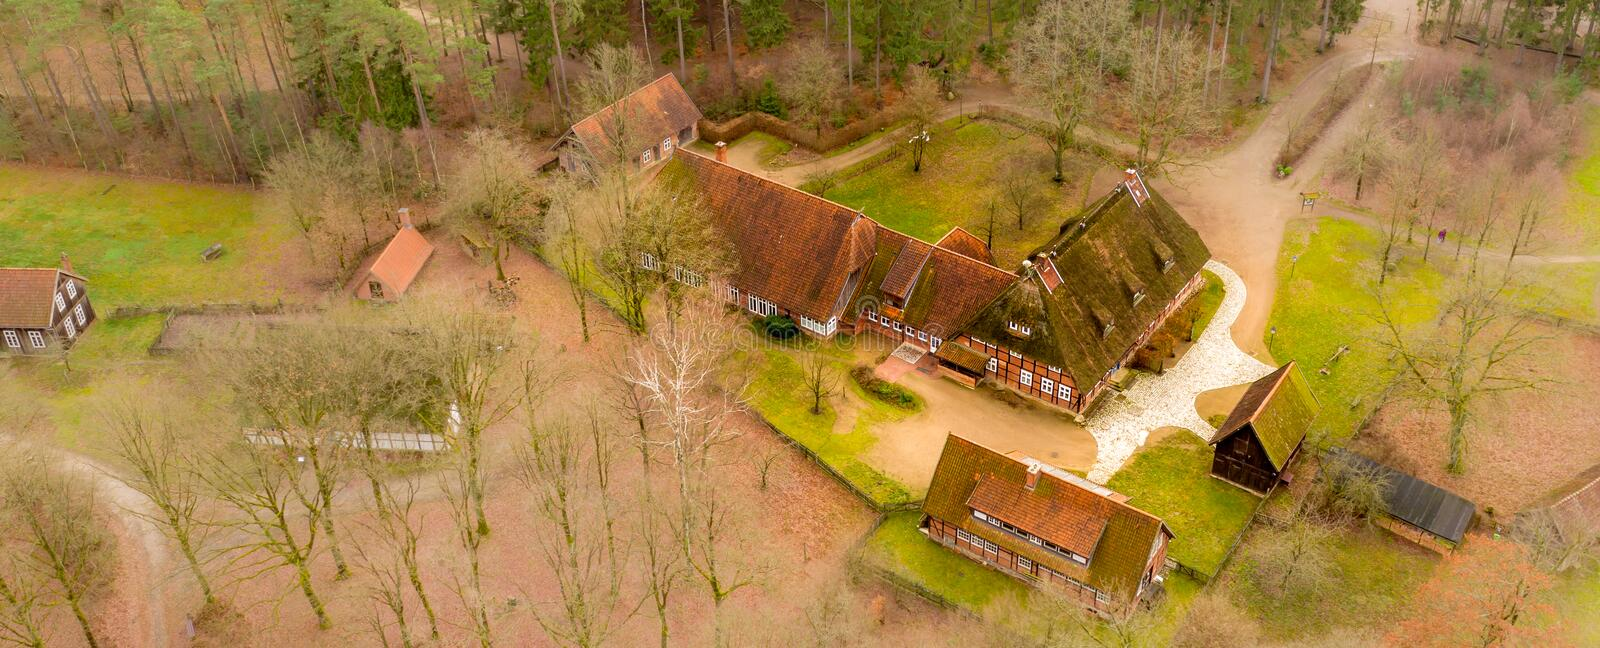 Large house and stables in the Hösseringen open-air museum in the Lünebürger Heide near Suderburg from the air, with historic. Farms and houses in the stock photo